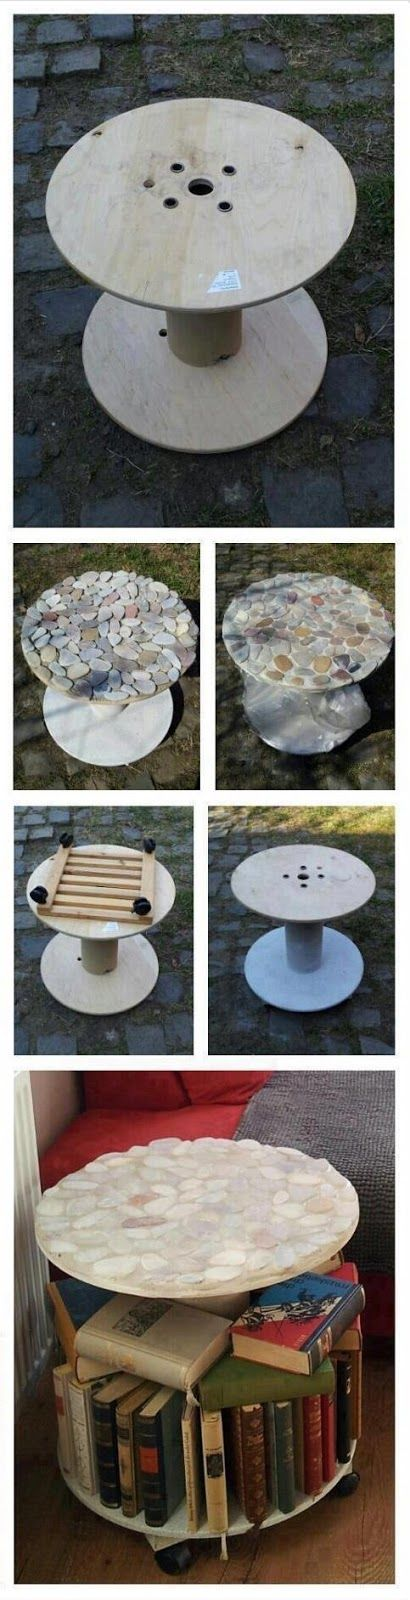 Make a table by recycling spool